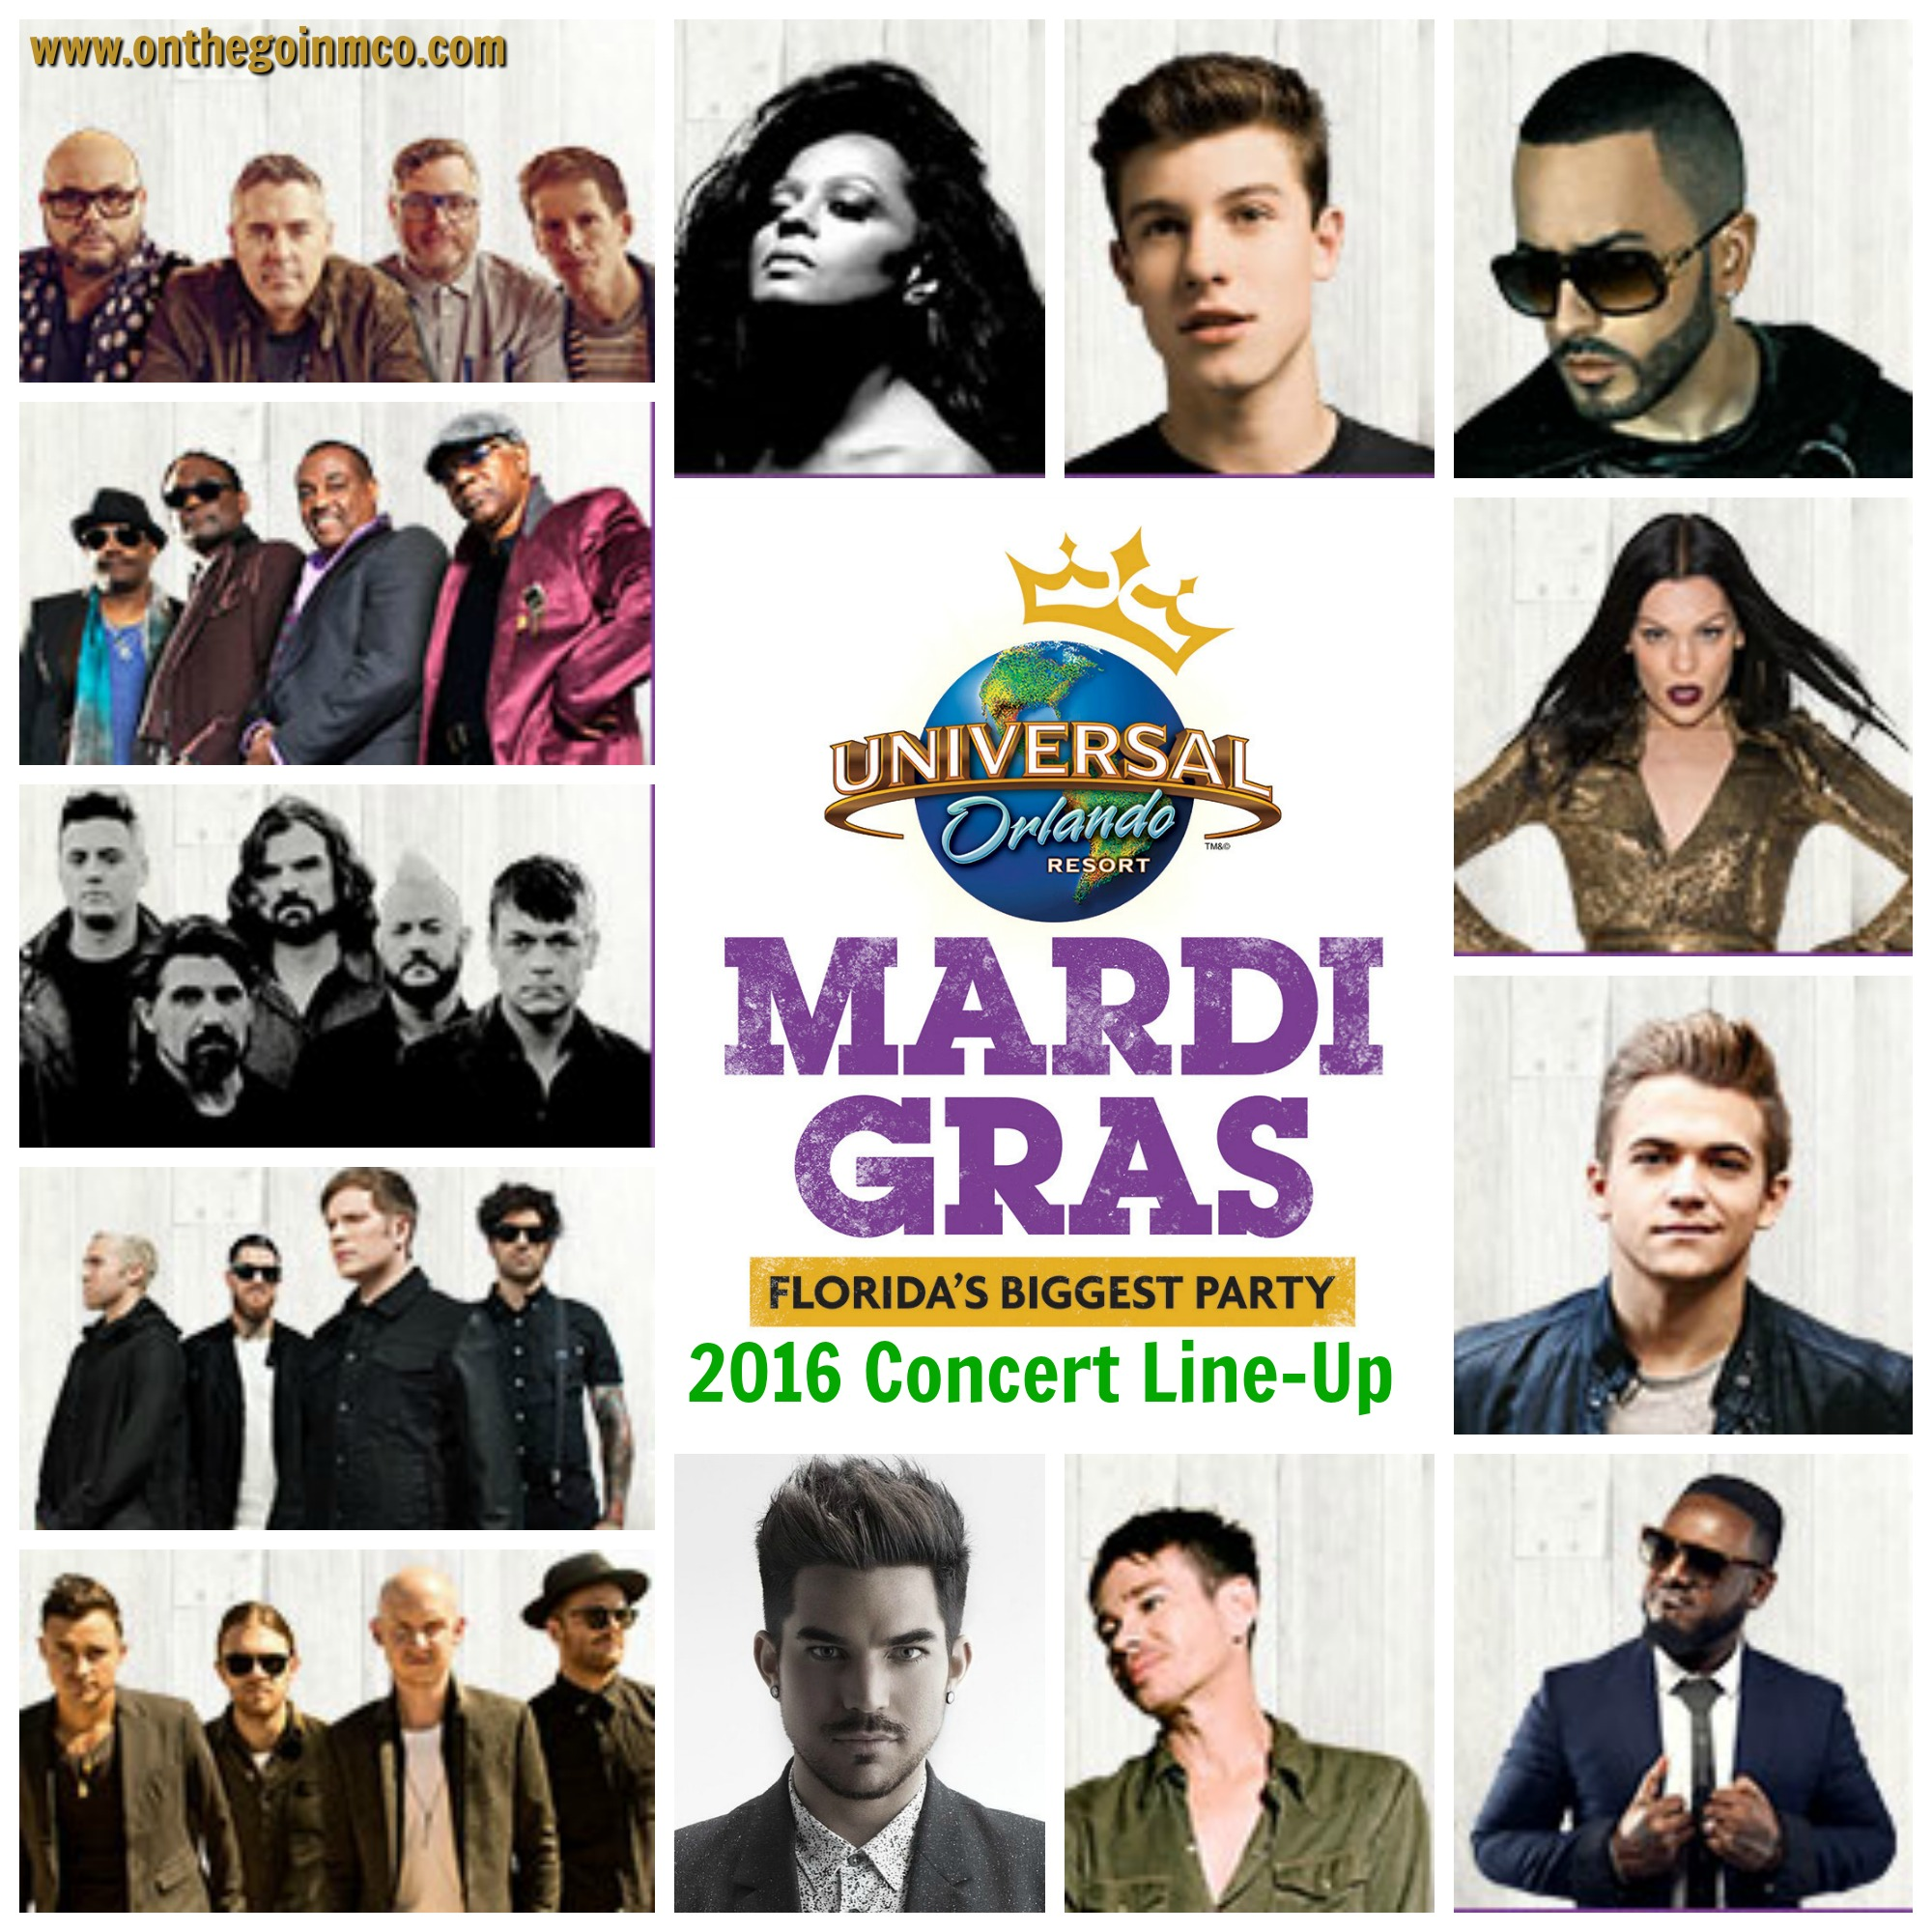 Universal Orlando Mardi Gras 2016 Concert Line-Up Collage